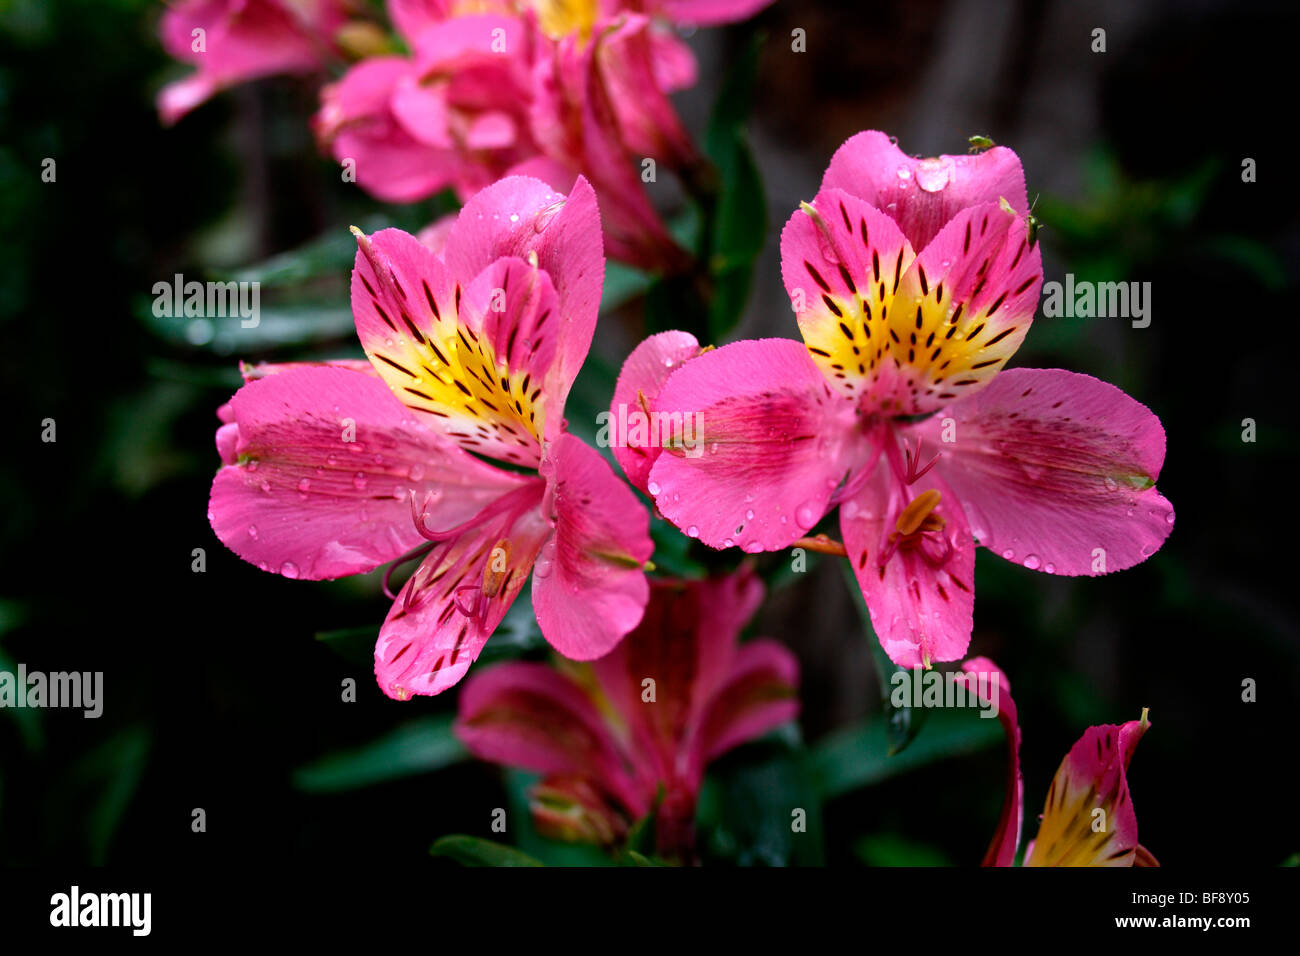 pink flowers, redish, yellow , with brown dotted flower - Stock Image